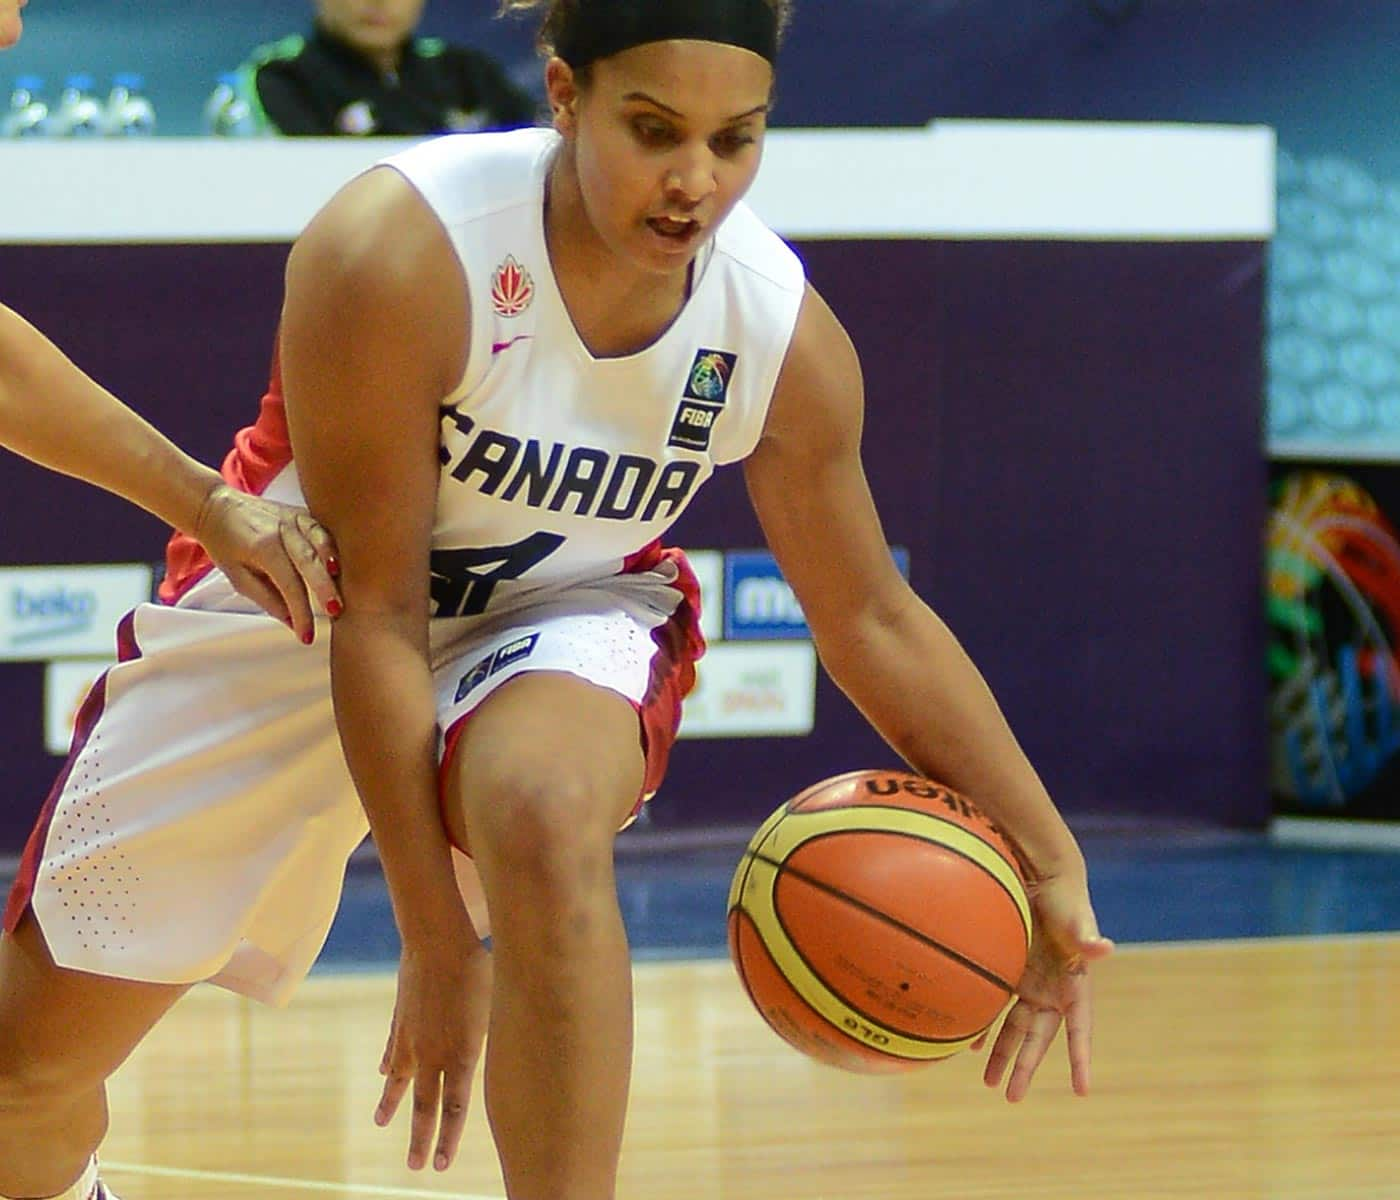 Miah-Marie Langlois celebrates her Canadian pride in Russia